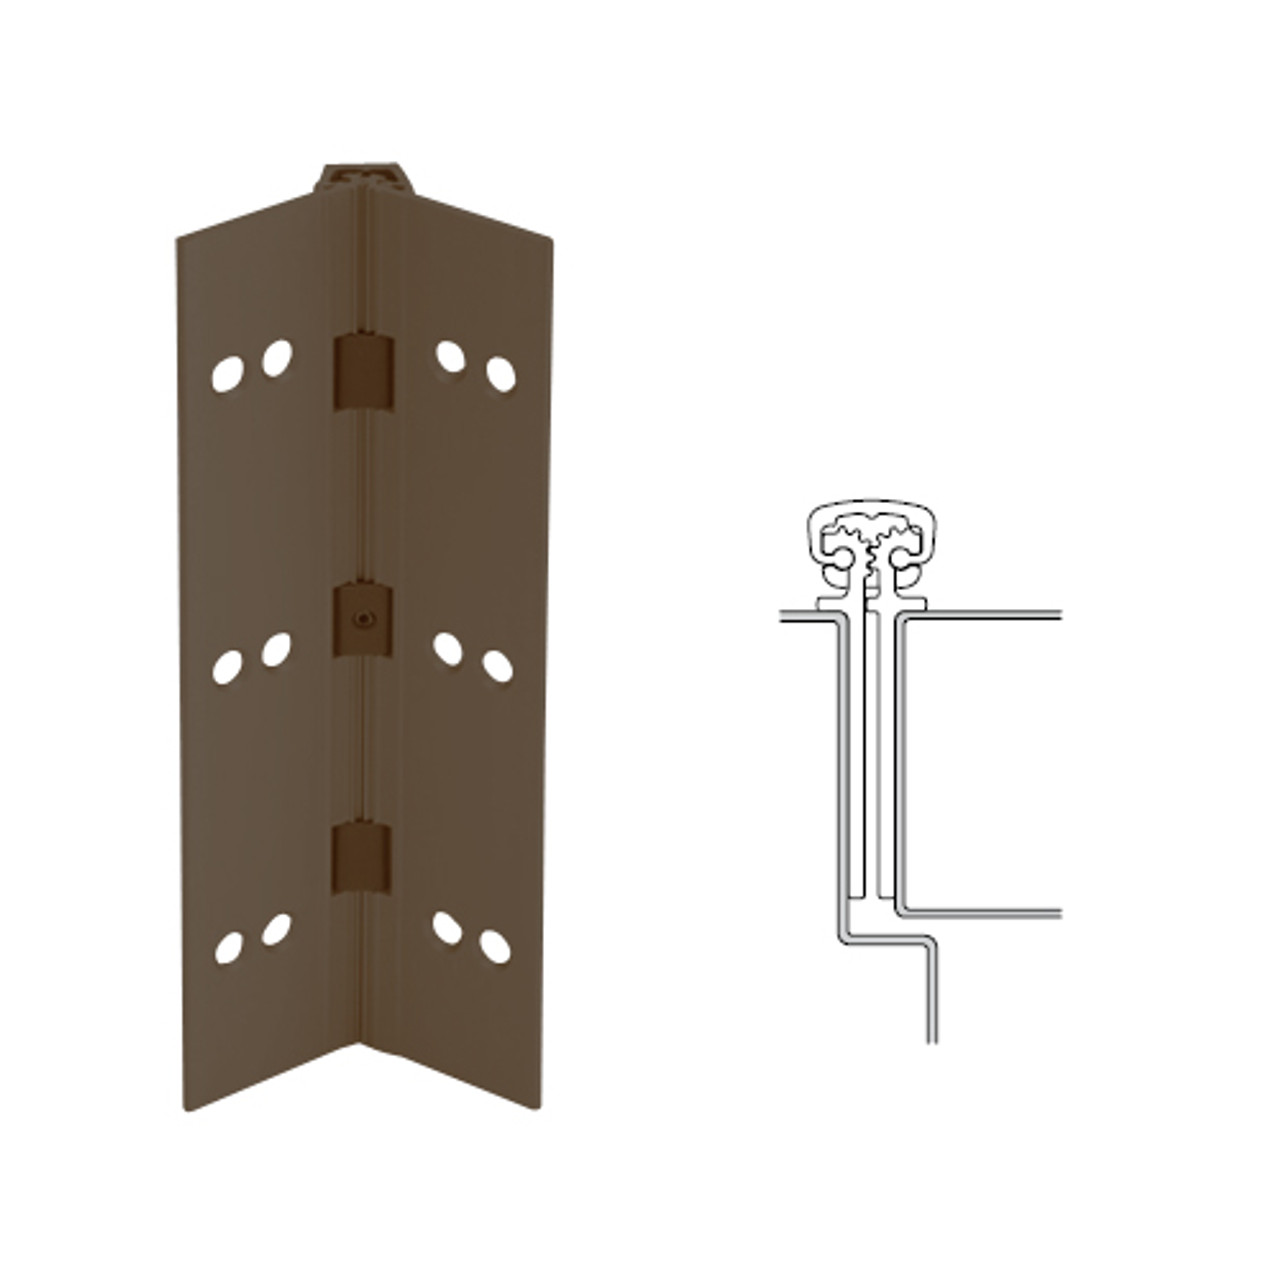 027XY-313AN-85 IVES Full Mortise Continuous Geared Hinges in Dark Bronze Anodized